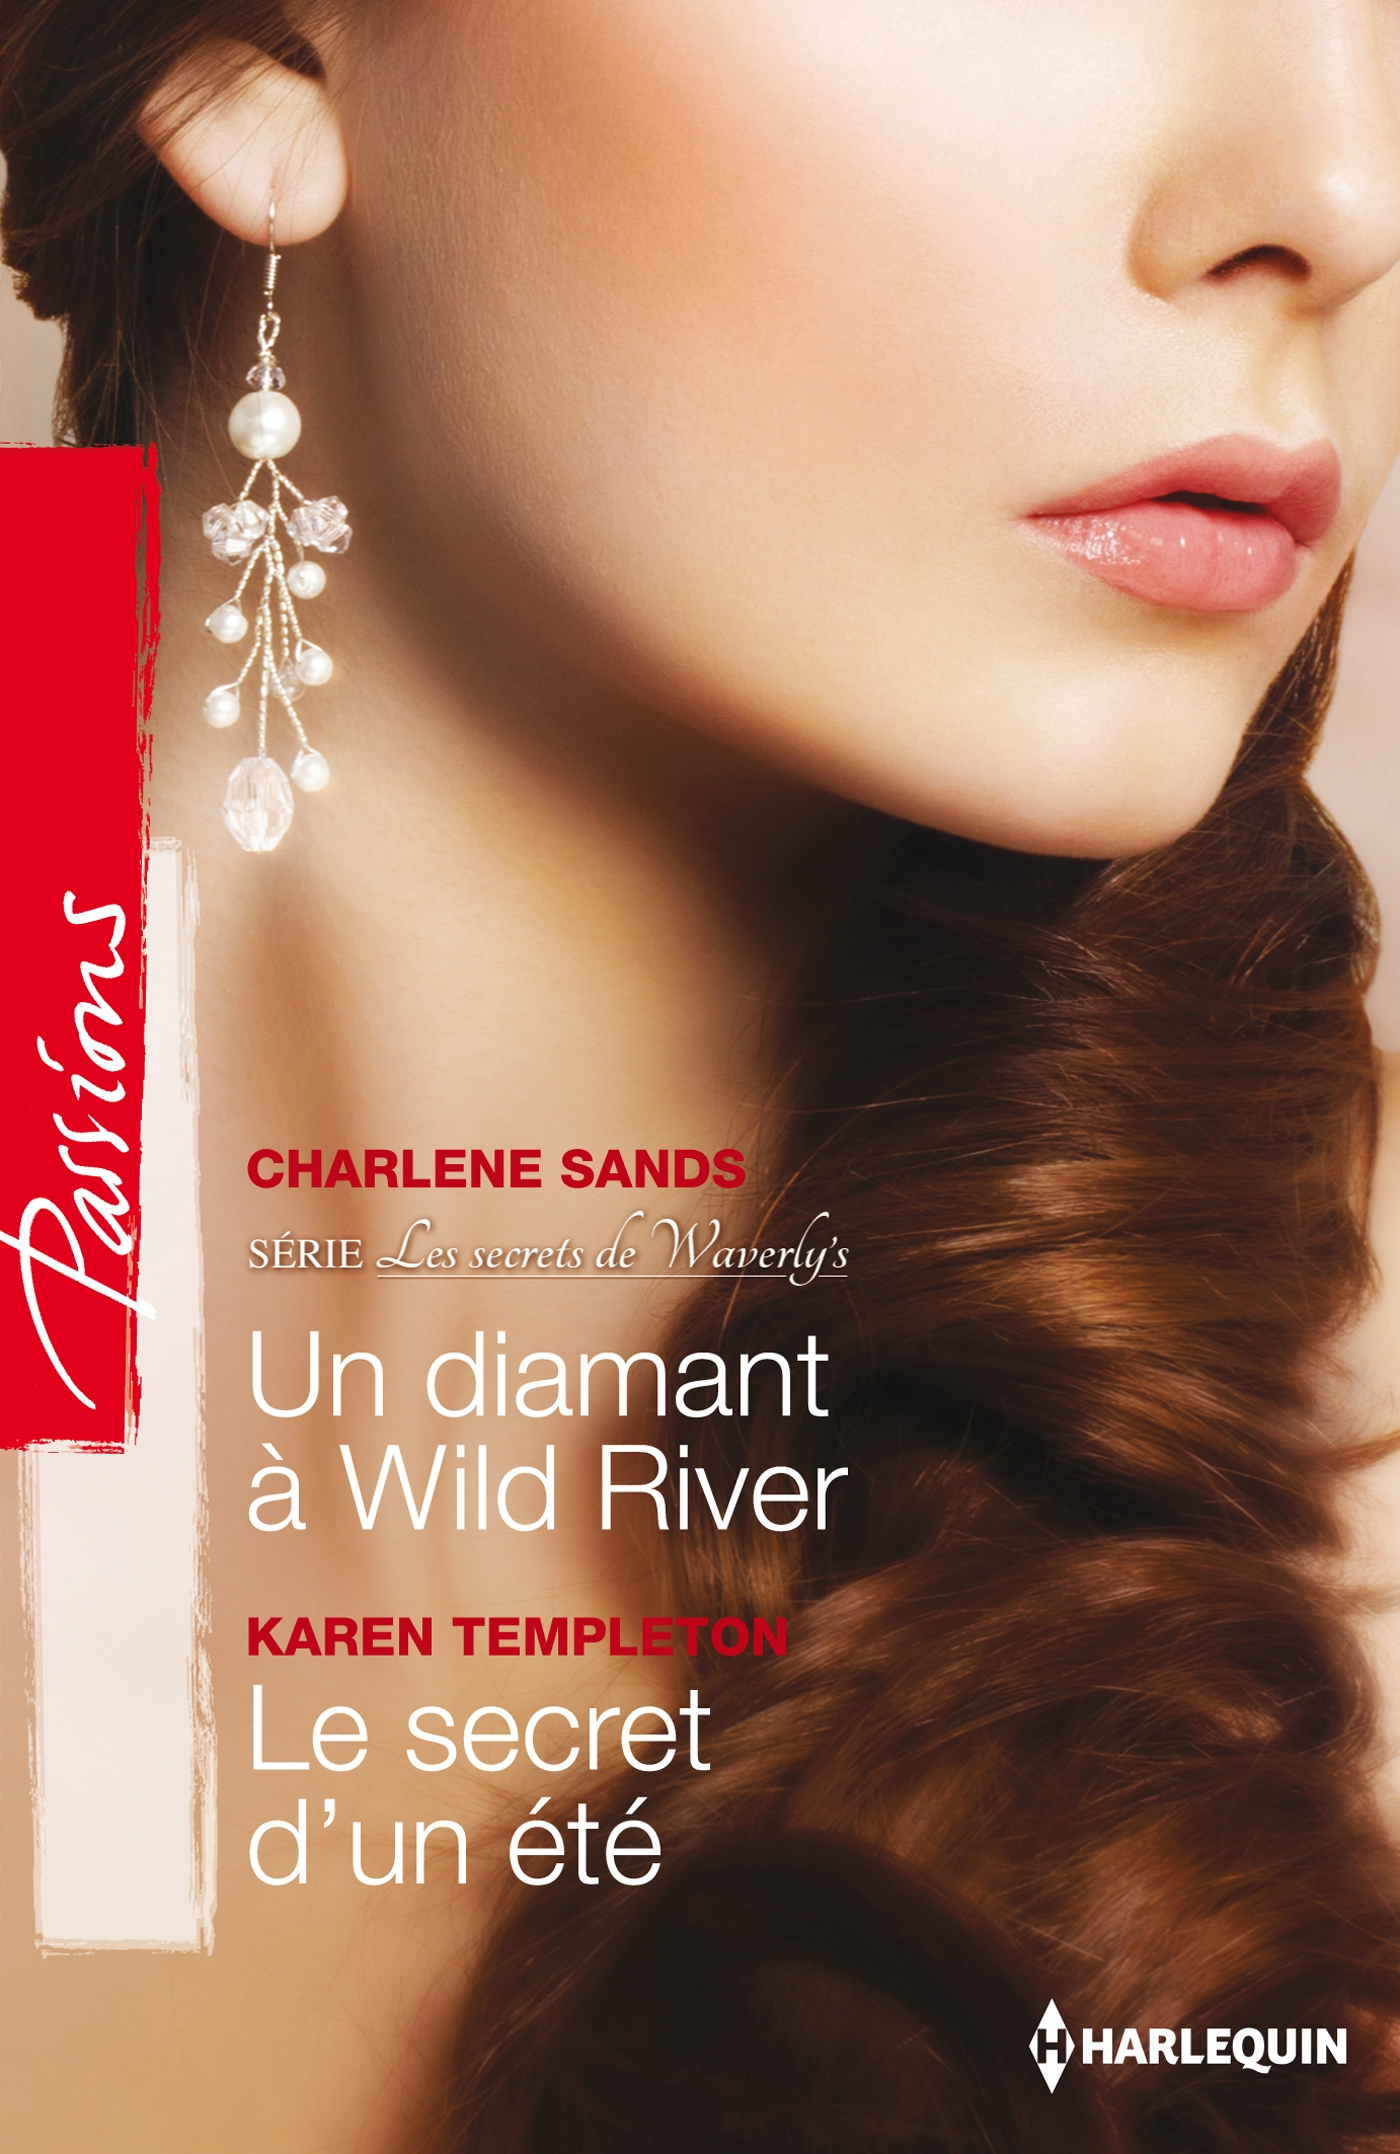 Un diamant à Wild River - Le secret d'un été